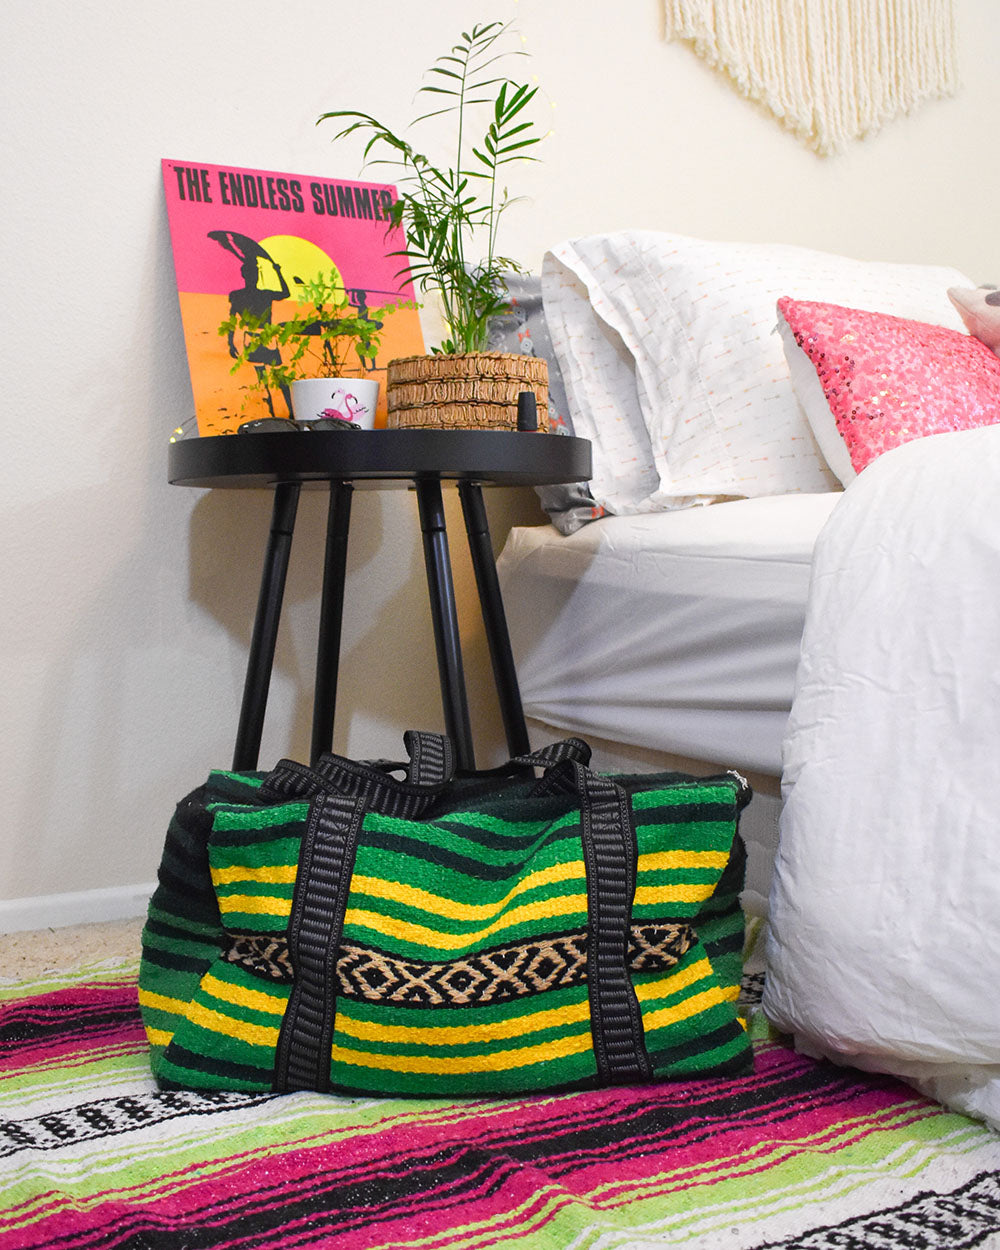 Dorm Life: There is going to be an occasional sleep over at your friends (or boyfriends) so don't forget a Wanderlust Weekender Bag for packing all the essentials. These multipurpose duffel bags also do double duty as gym bags, beach bags, storage bags, or what ever else you might need a bag for.